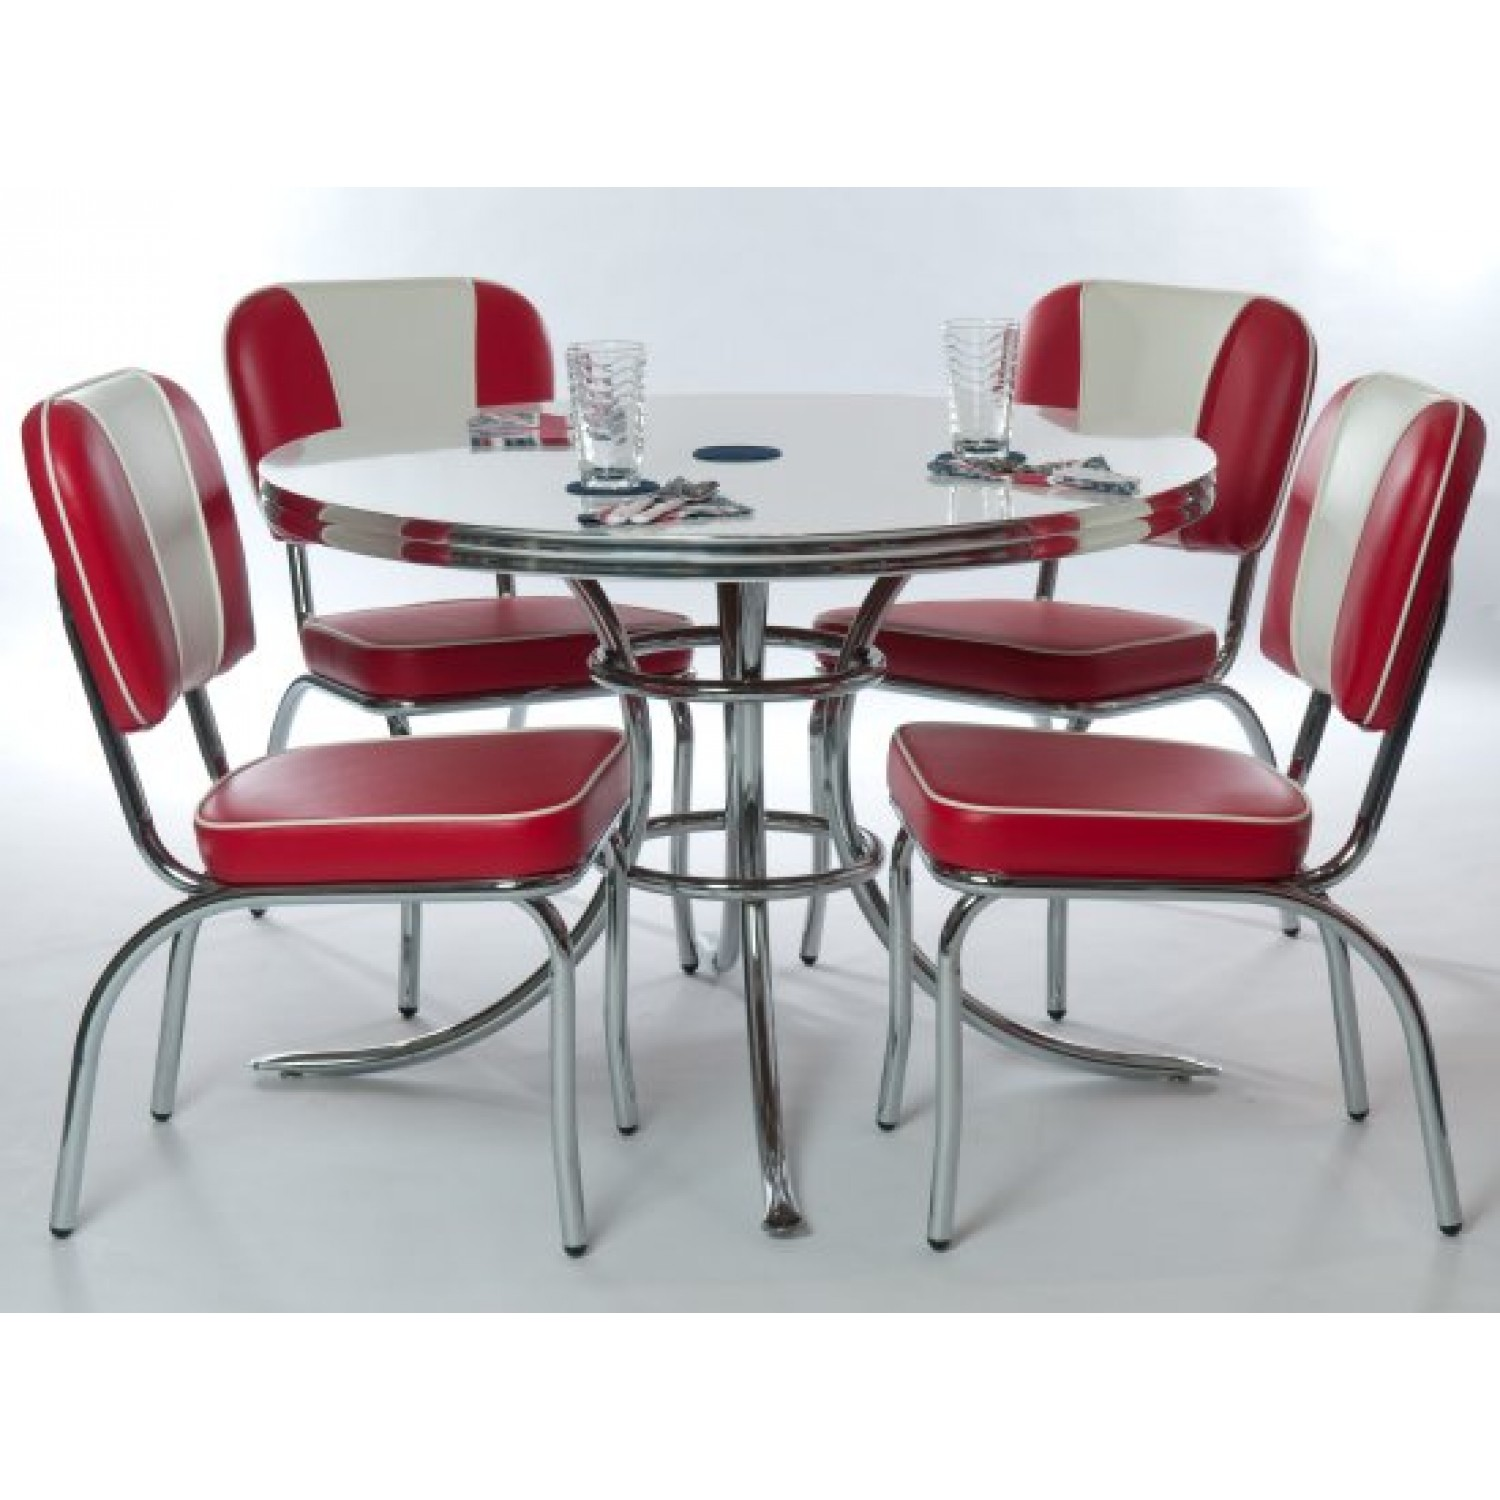 retro red kitchen chairs photo - 8